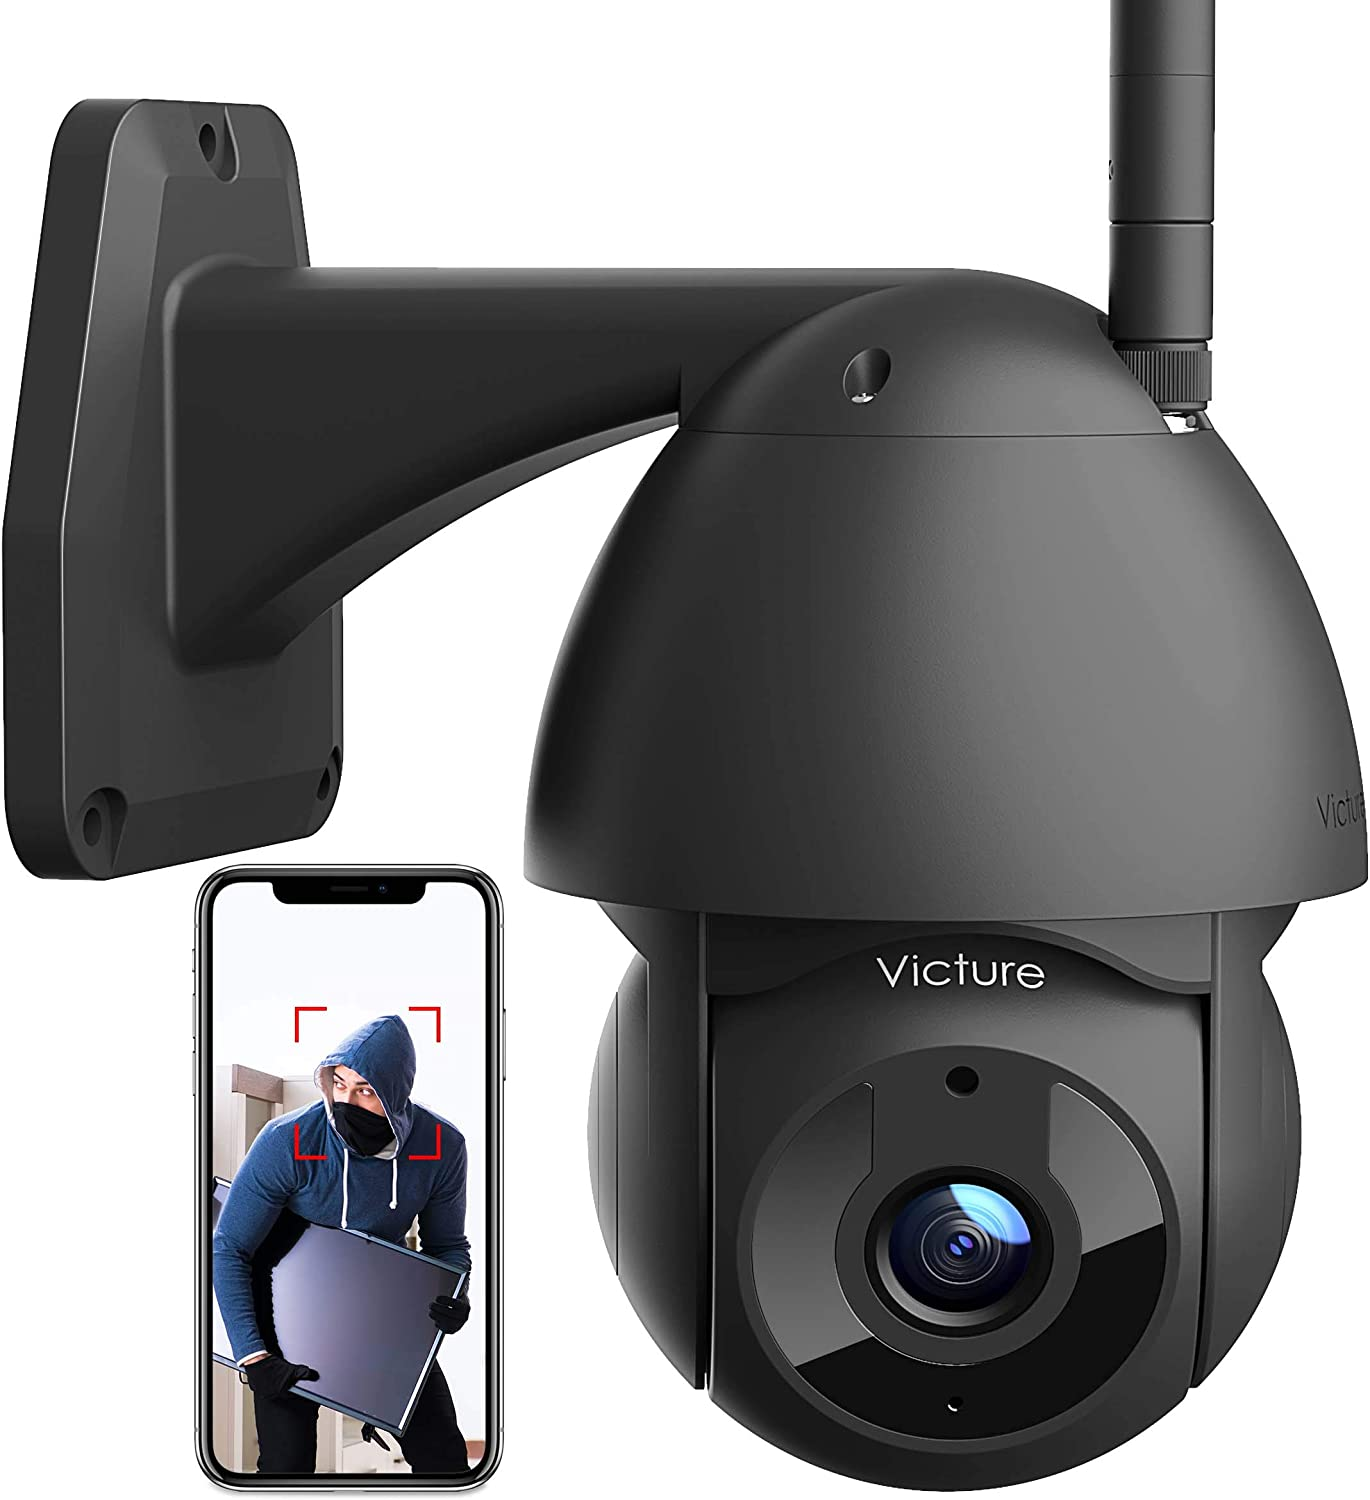 Security Camera Outdoor Victure 1080P WiFi Home Security Camera with Pan/Tilt 360° View Night Vision IP66 Waterproof Motion Detection Compatible with iOS/Android